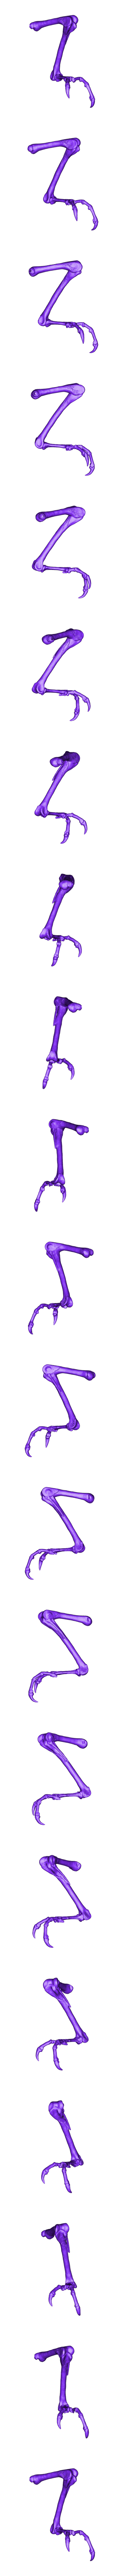 NEW-Left-Leg-repaired-repaired-repaired.stl Download STL file Macow Skeleton • 3D printing template, LordLilapause